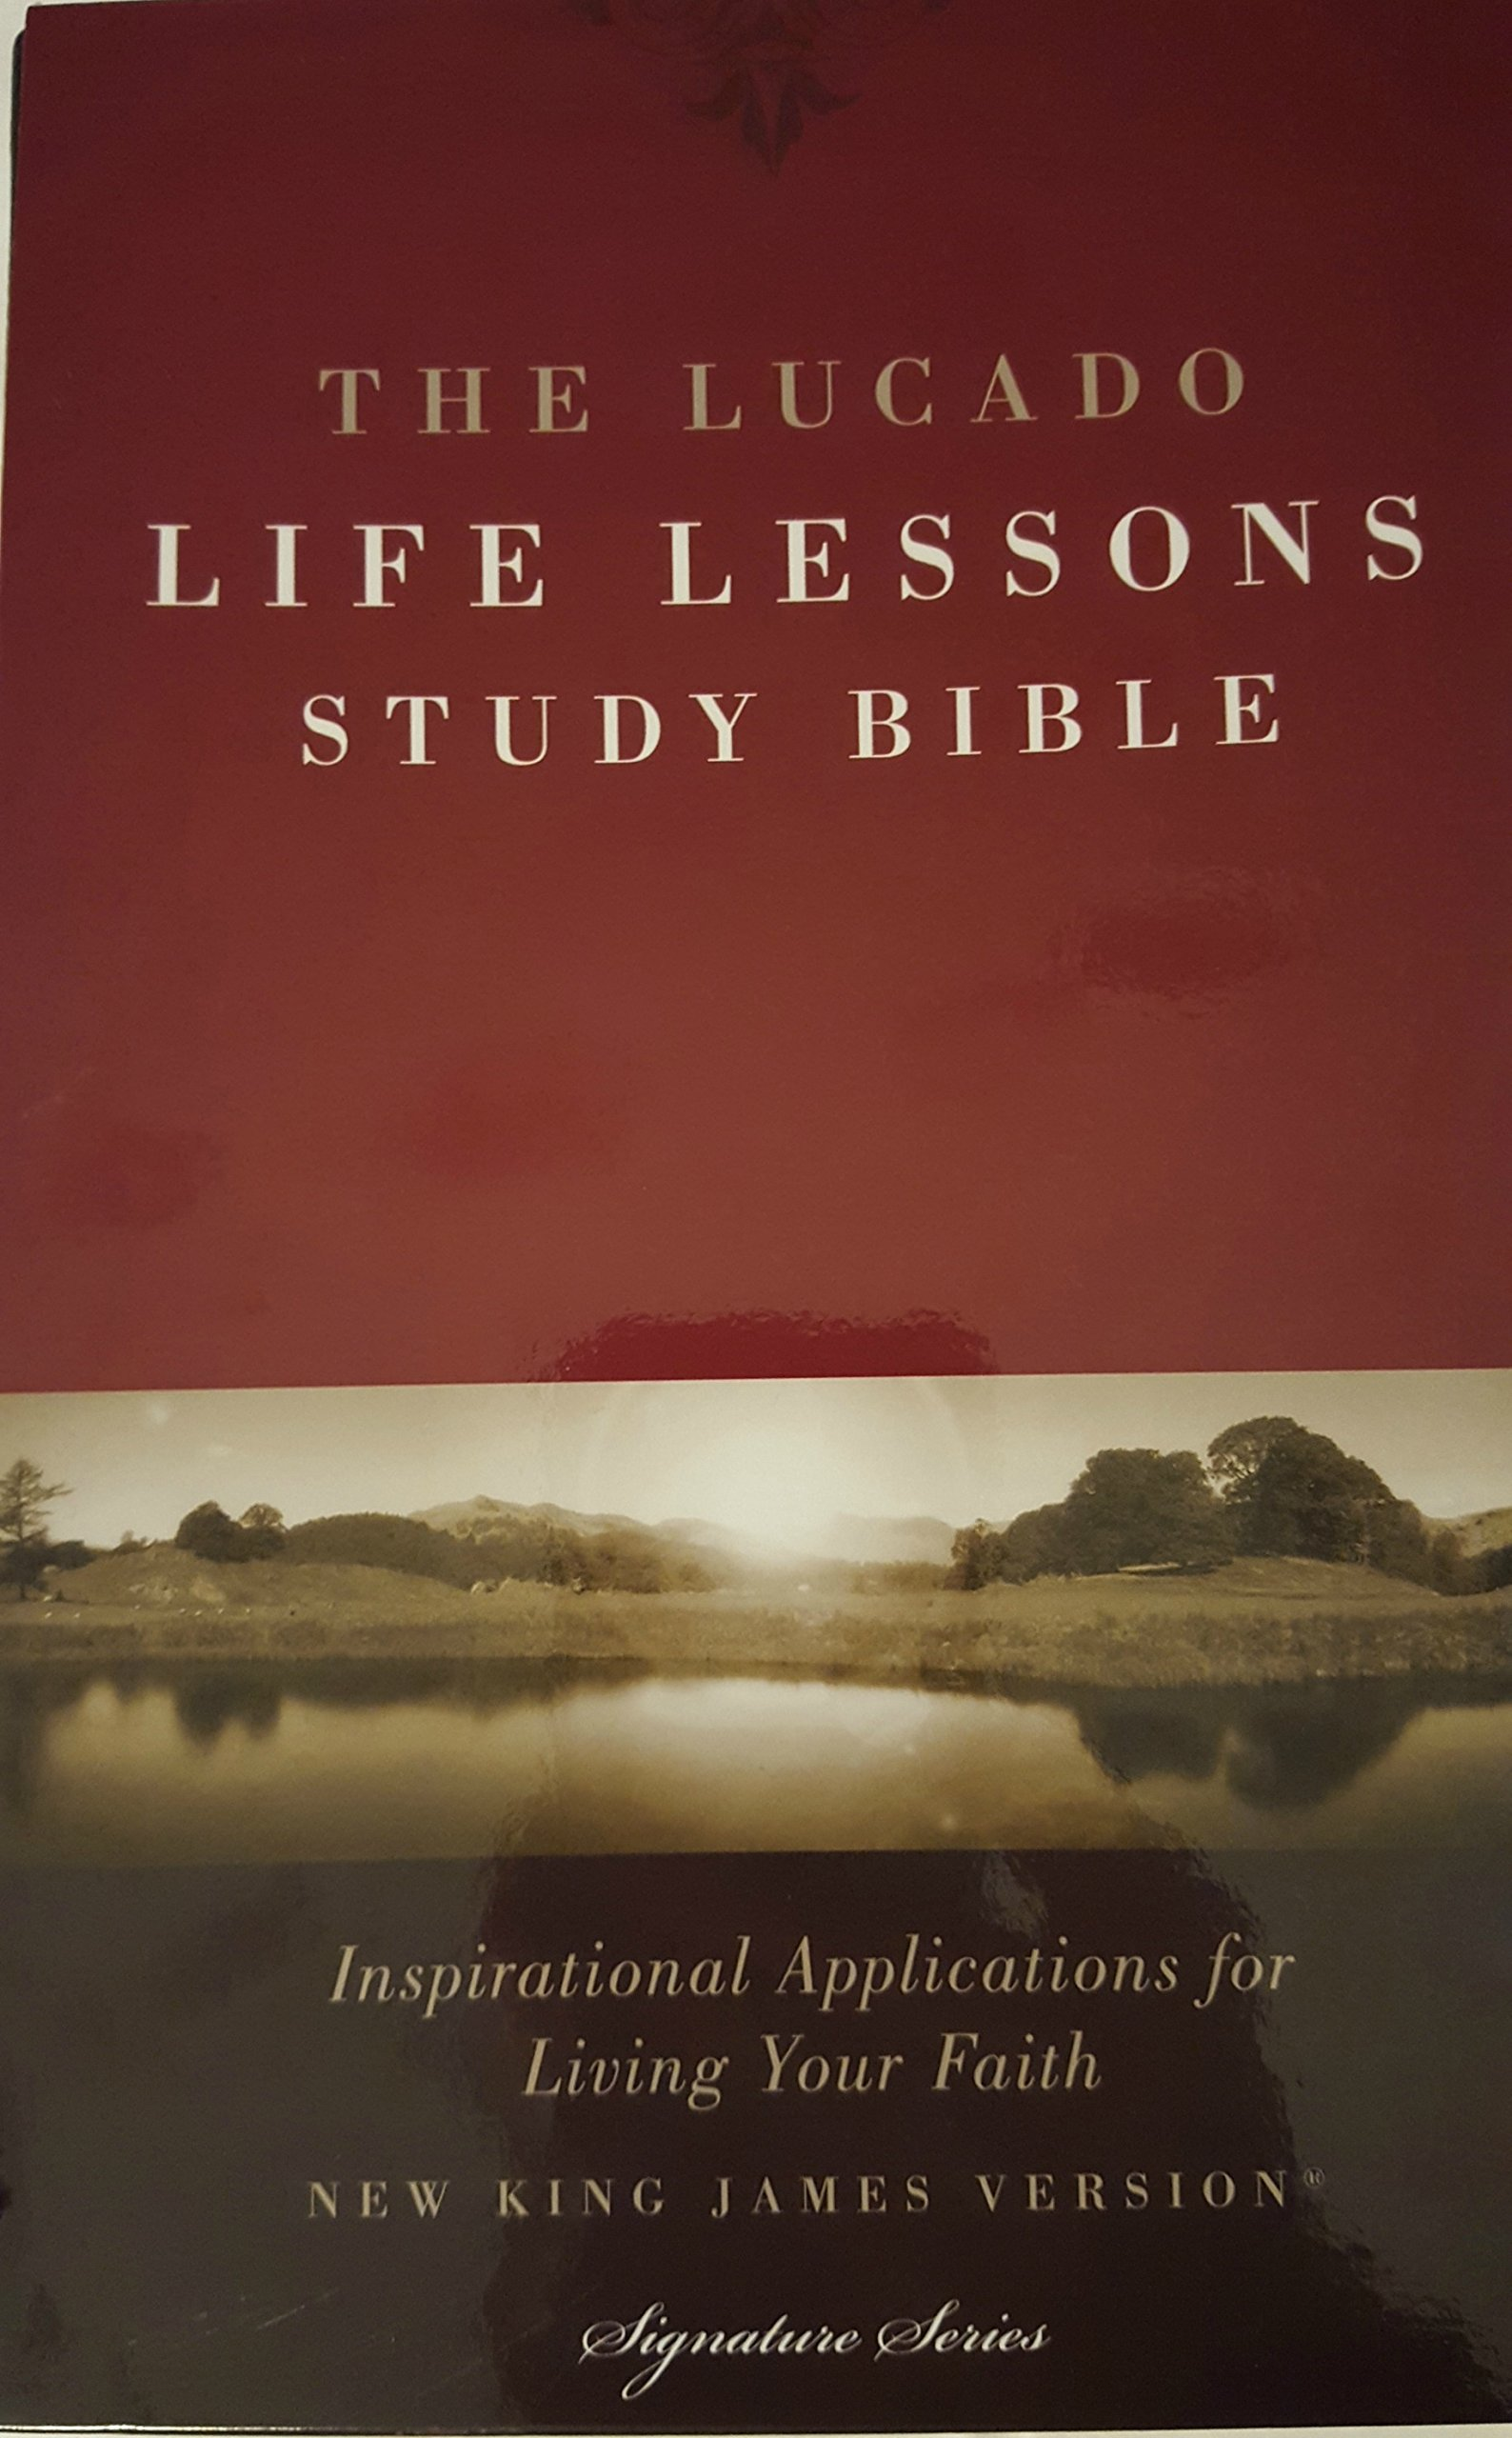 Download The Lucado Life Lessons Study Bible Inspirational Applications for Living Your Faith New King James Version Signature Series pdf